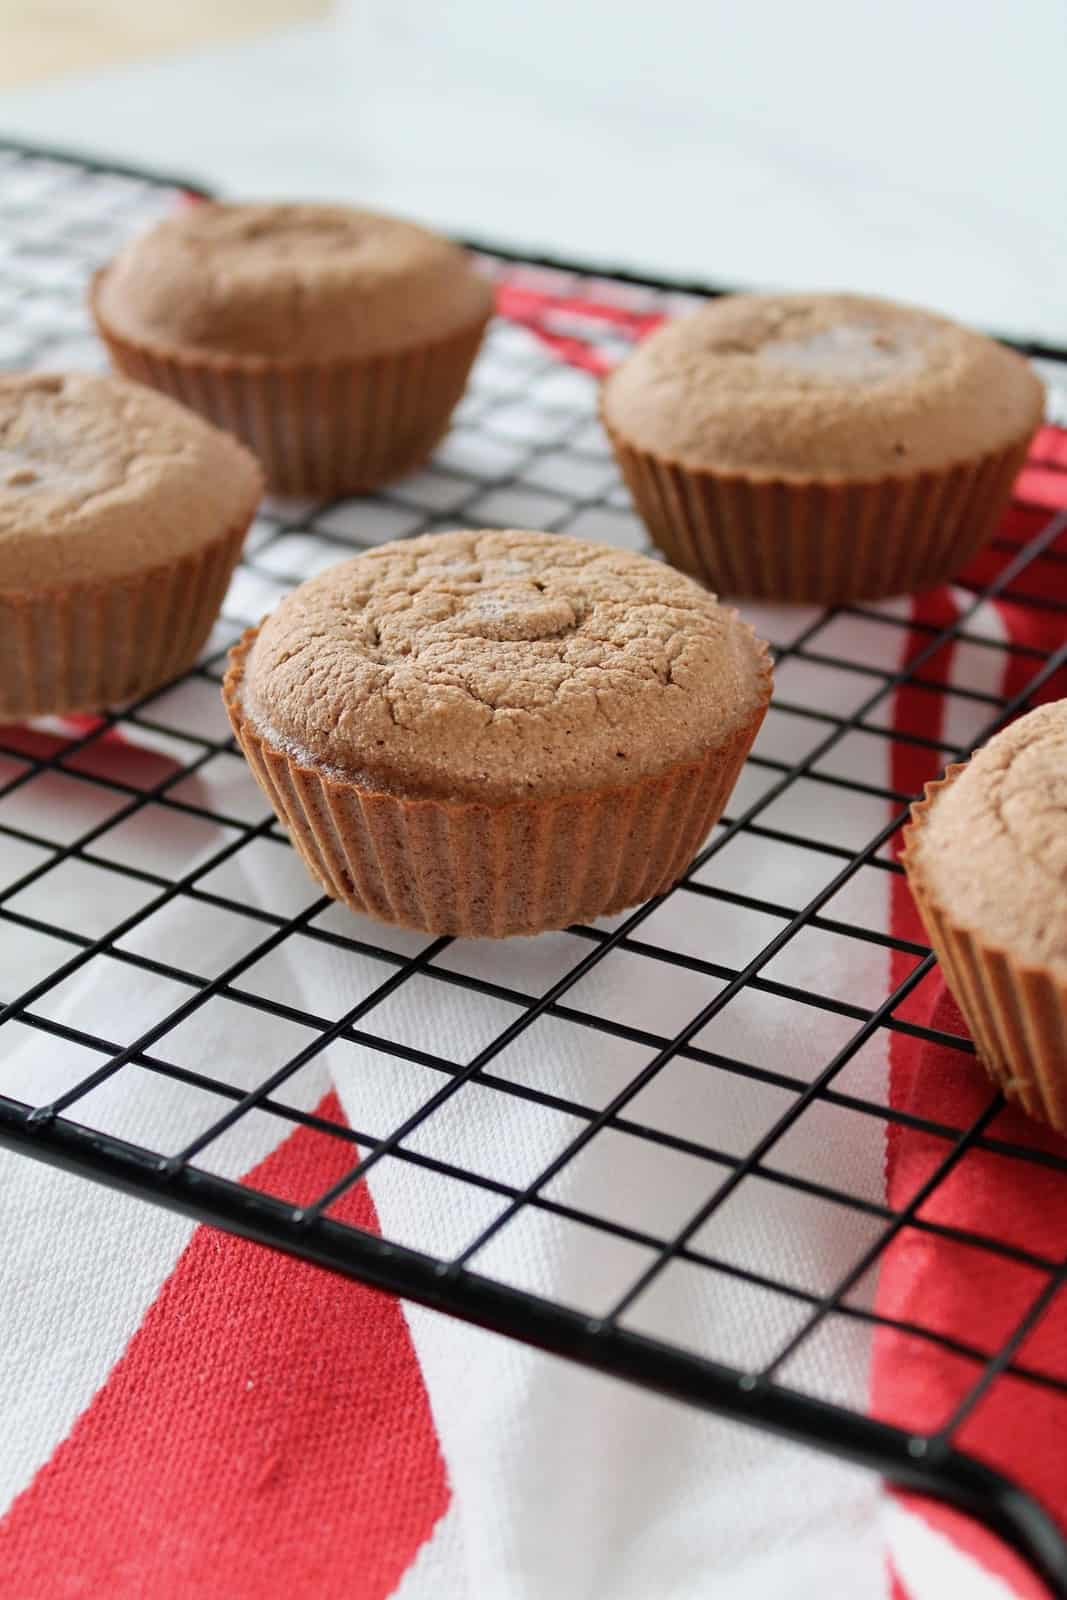 Keto chocolate muffins on a black wire cooling rack with red and white dish towel underneath